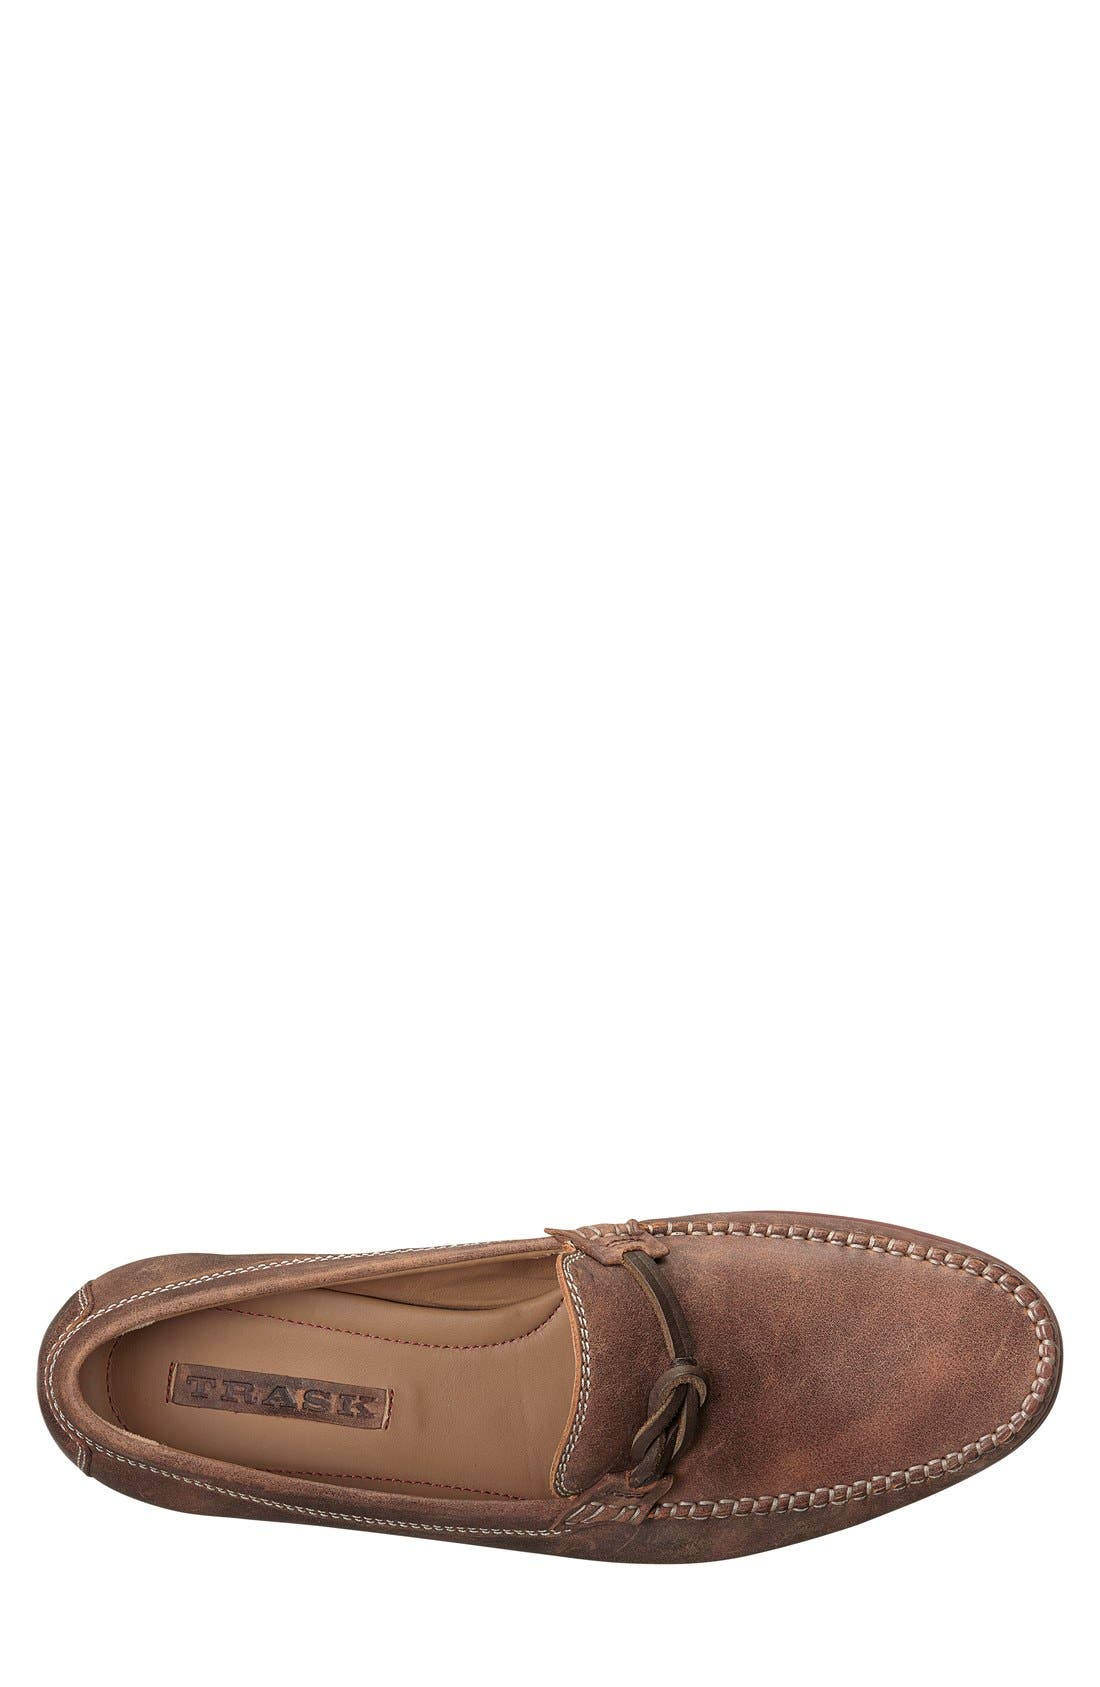 'Seth' Loafer,                             Alternate thumbnail 3, color,                             BROWN